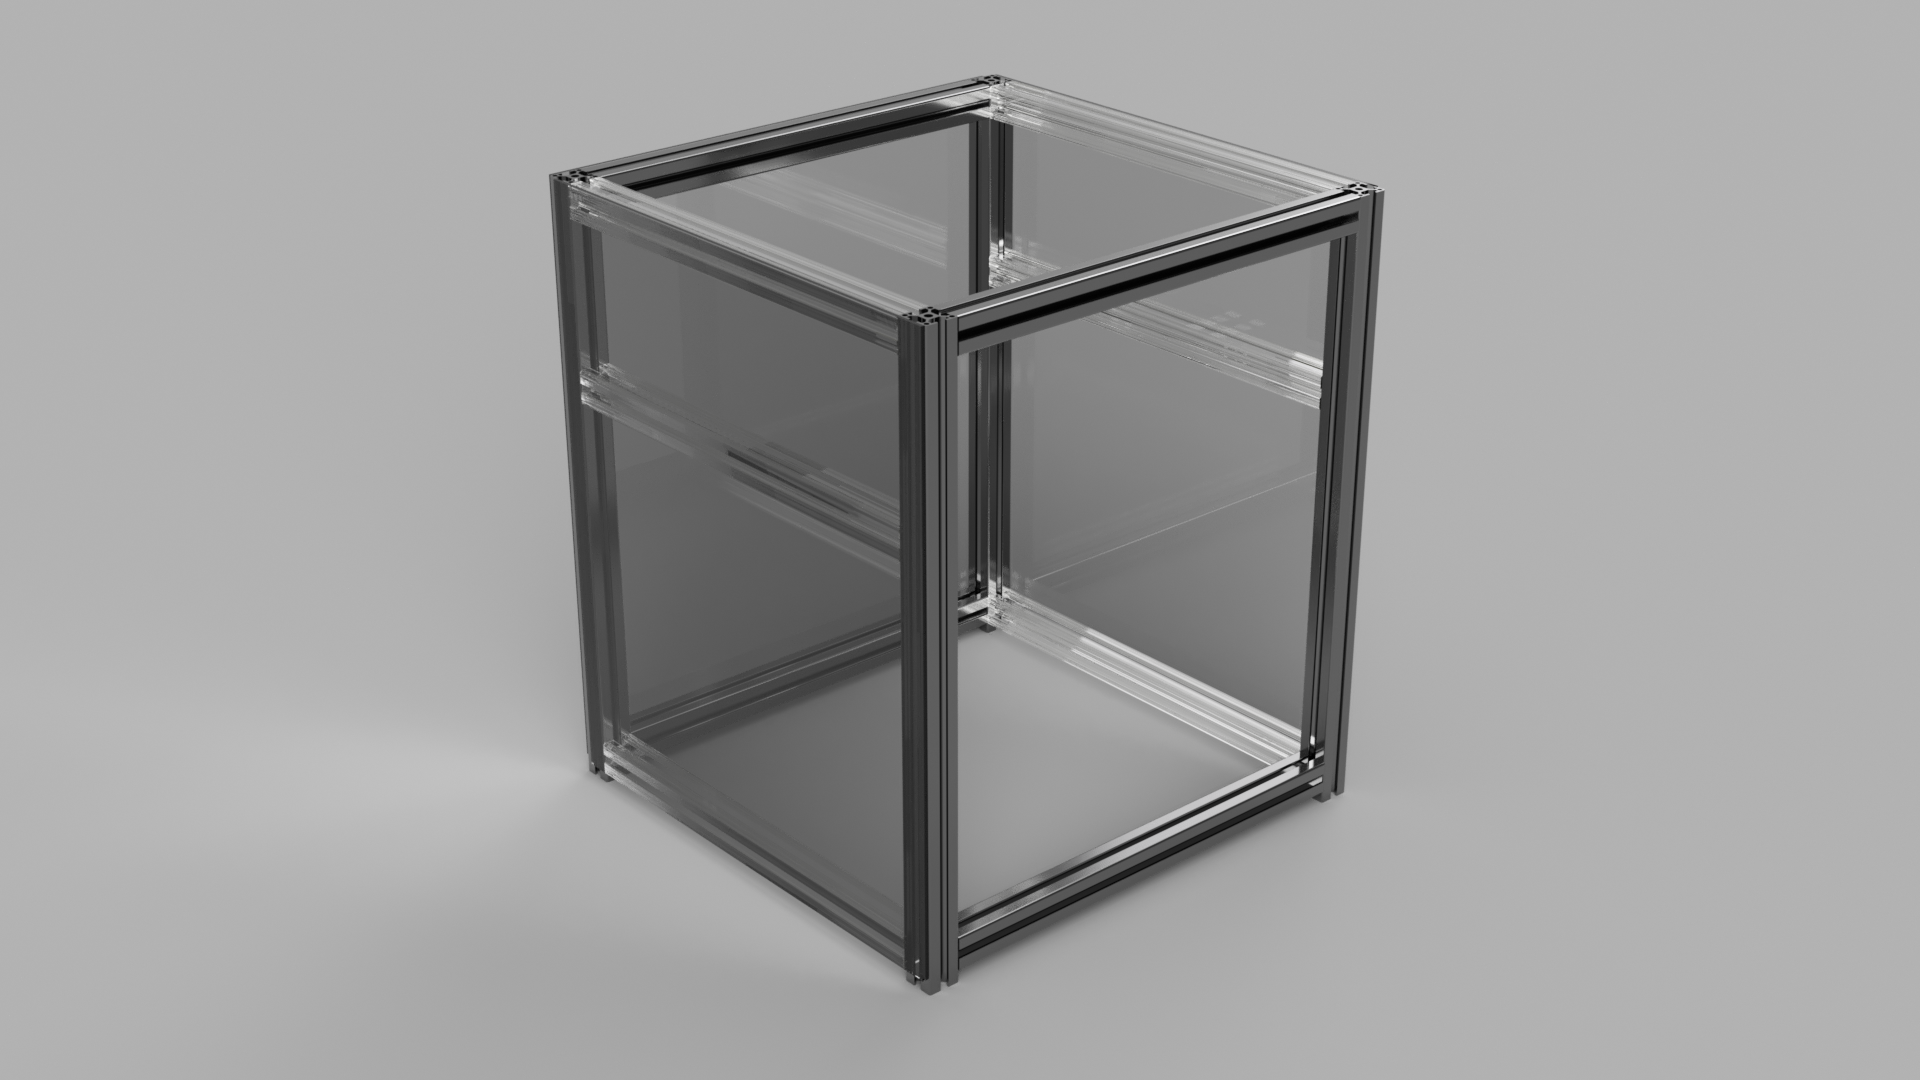 Hypercube_Evolution_2017-May-14_03-29-06PM-000_CustomizedView45294652764.png